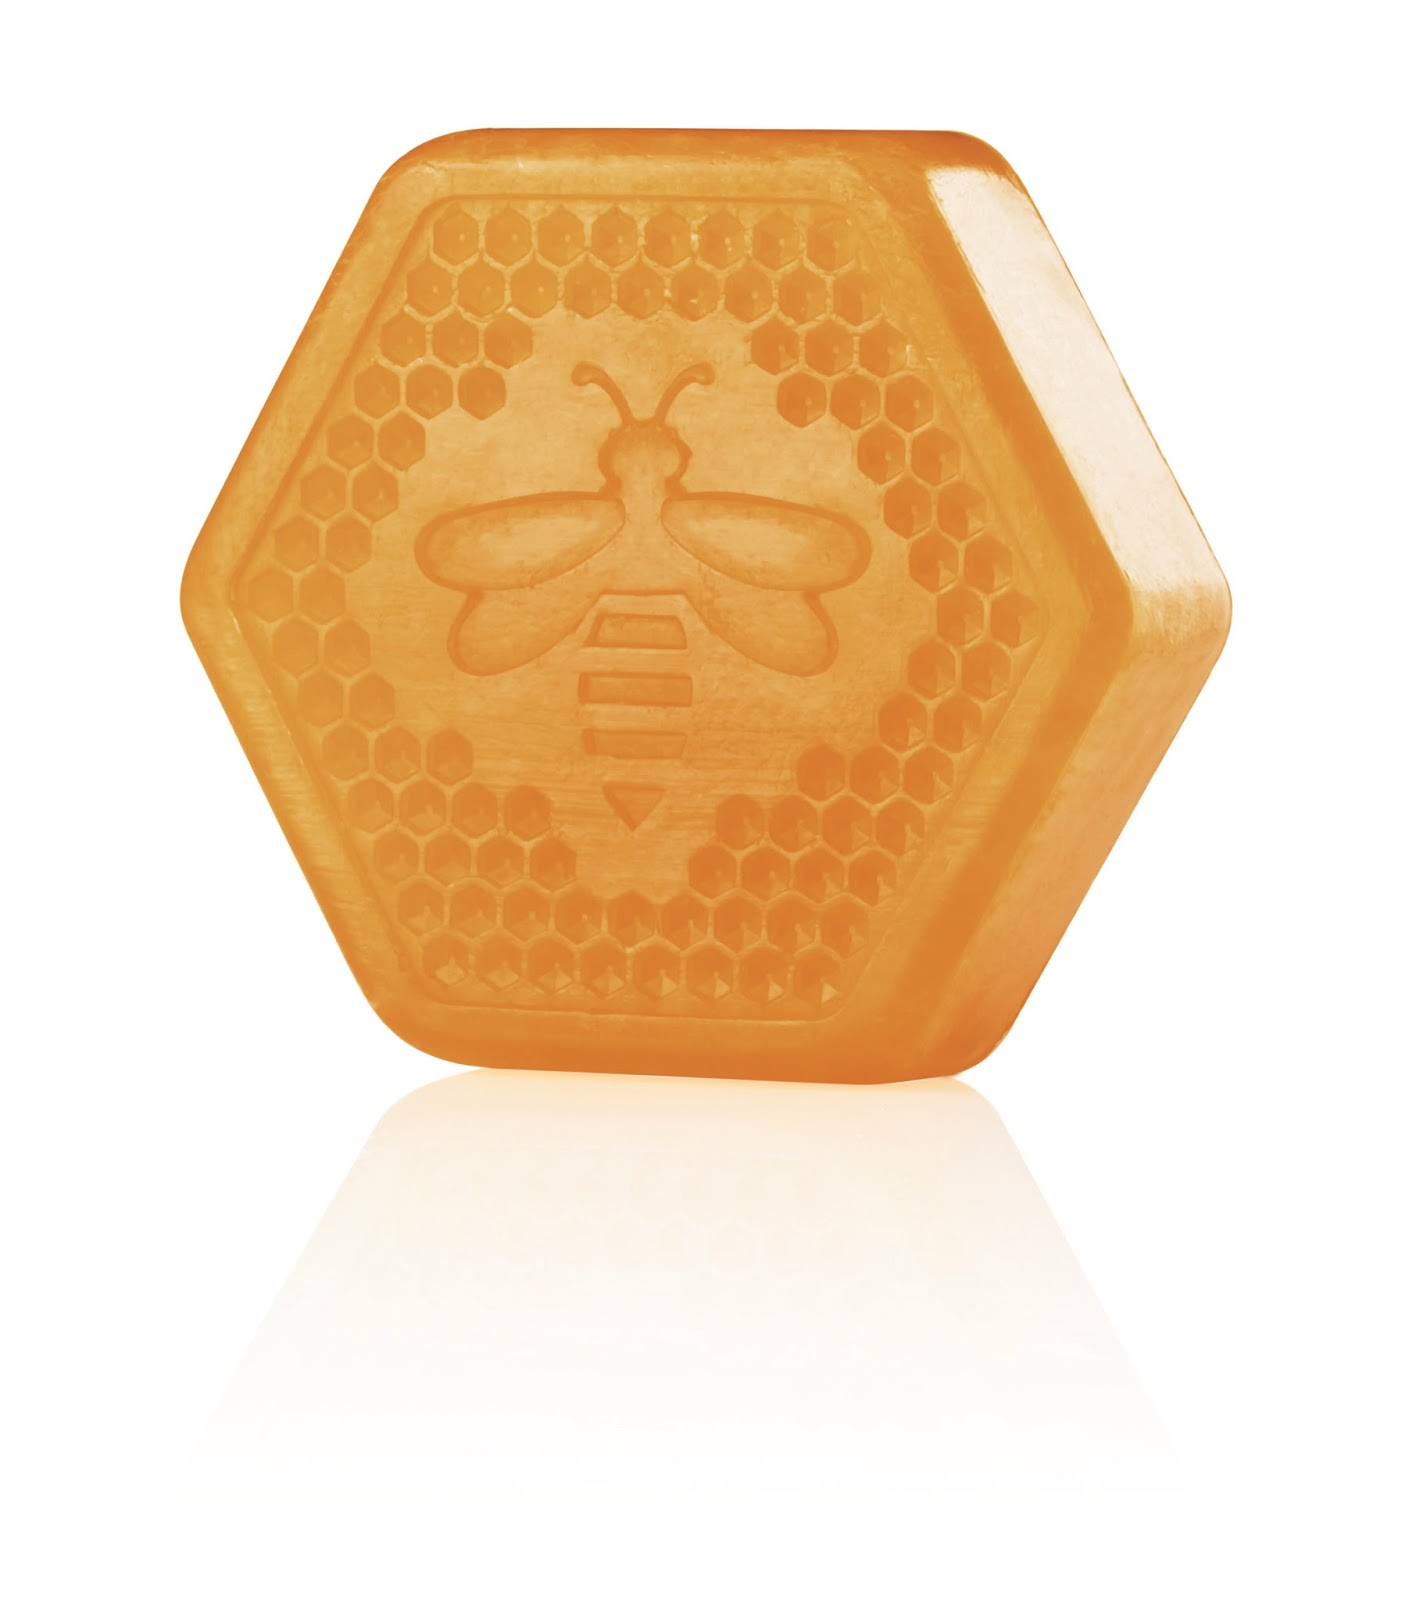 The Body Shop Honeymani Collection: Info + Prices! - Heart